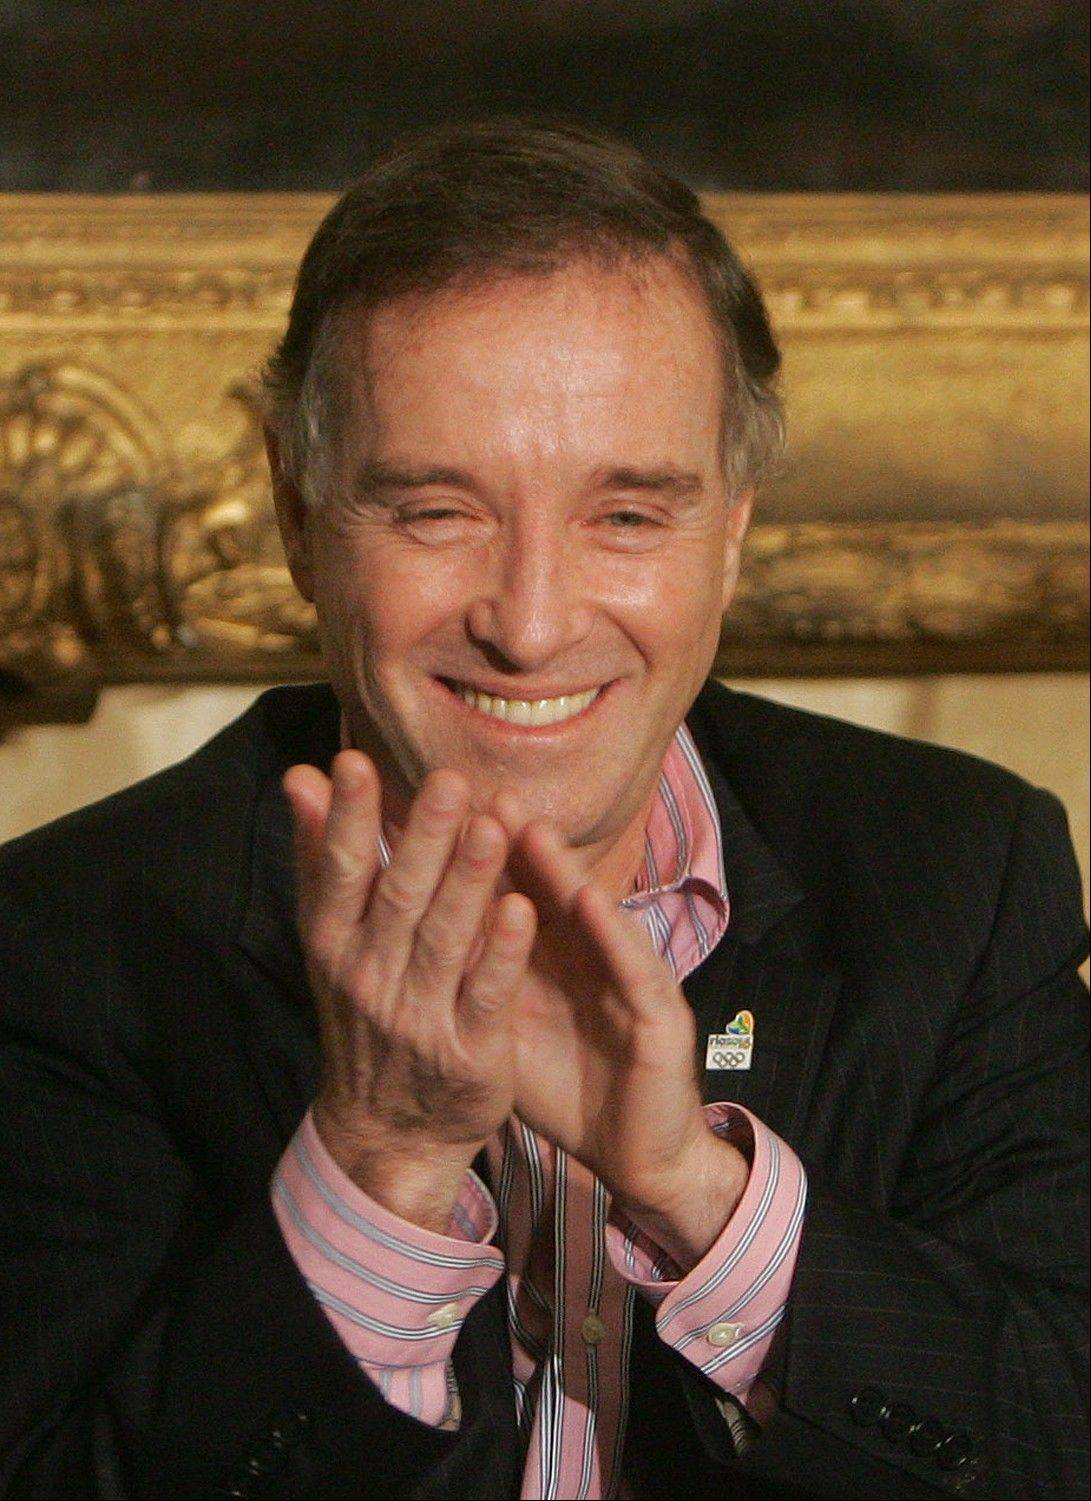 In this April 7, 2009 file photo, Brazilian billionaire Eike Batista attends a ceremony in which Batista donated about $4.5 U.S. million dollars for the the Rio 2016 Olympic games bid, in Rio de Janeiro, Brazil. The oil company of Brazil's one-time richest man Eike Batista has filed for bankruptcy protection on Oct. 30, 2013.